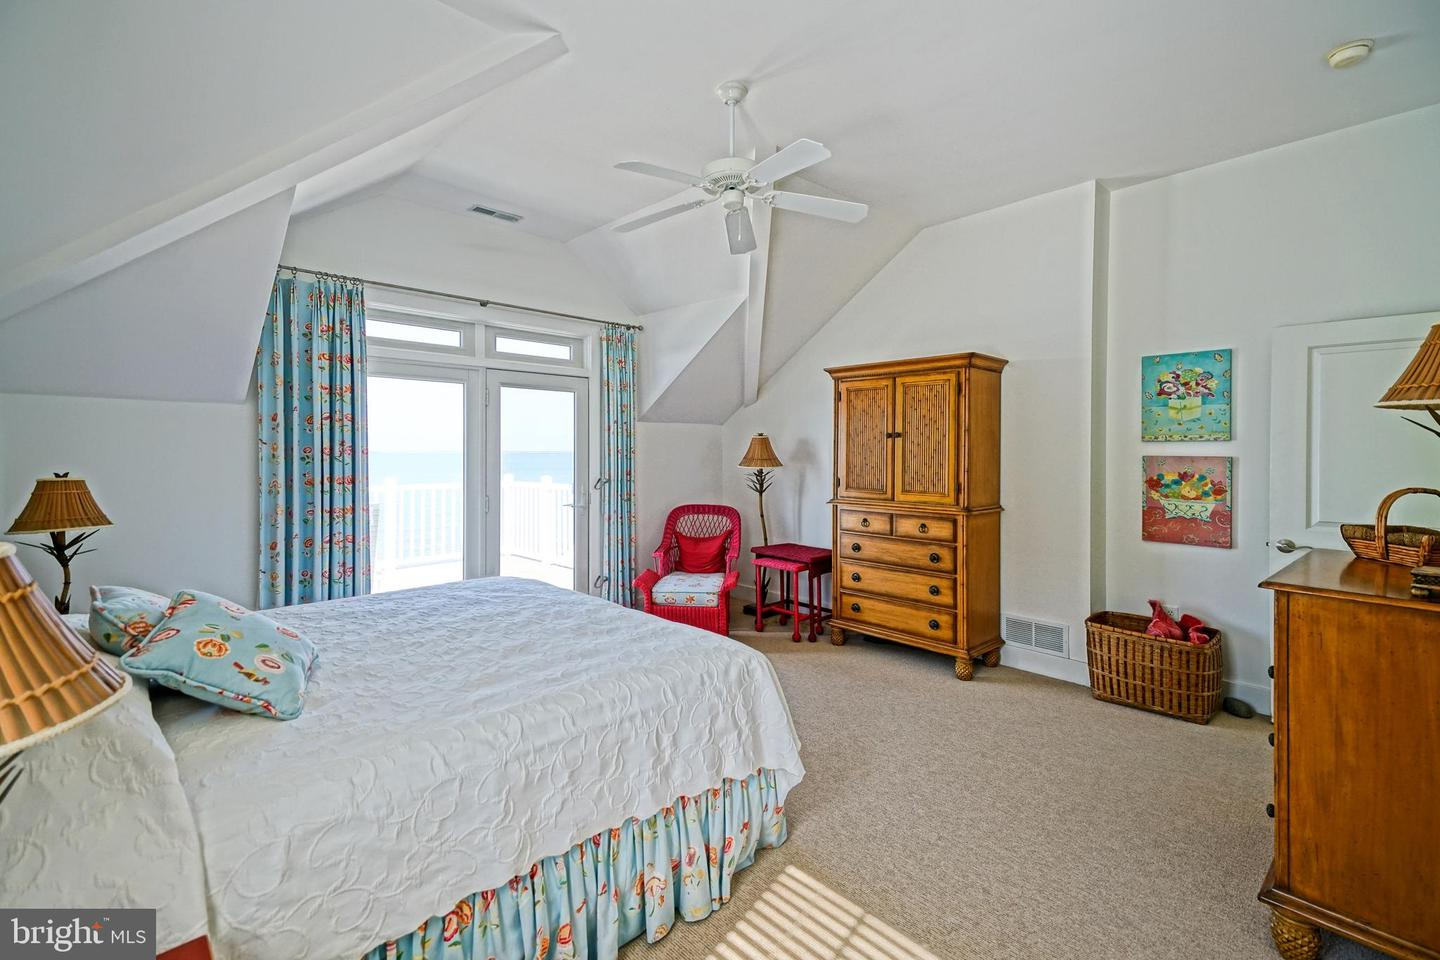 DESU147606-302022576229-2020-06-30-19-11-19 124 W Cape Shores Dr | Lewes, DE Real Estate For Sale | MLS# Desu147606  - Lee Ann Group